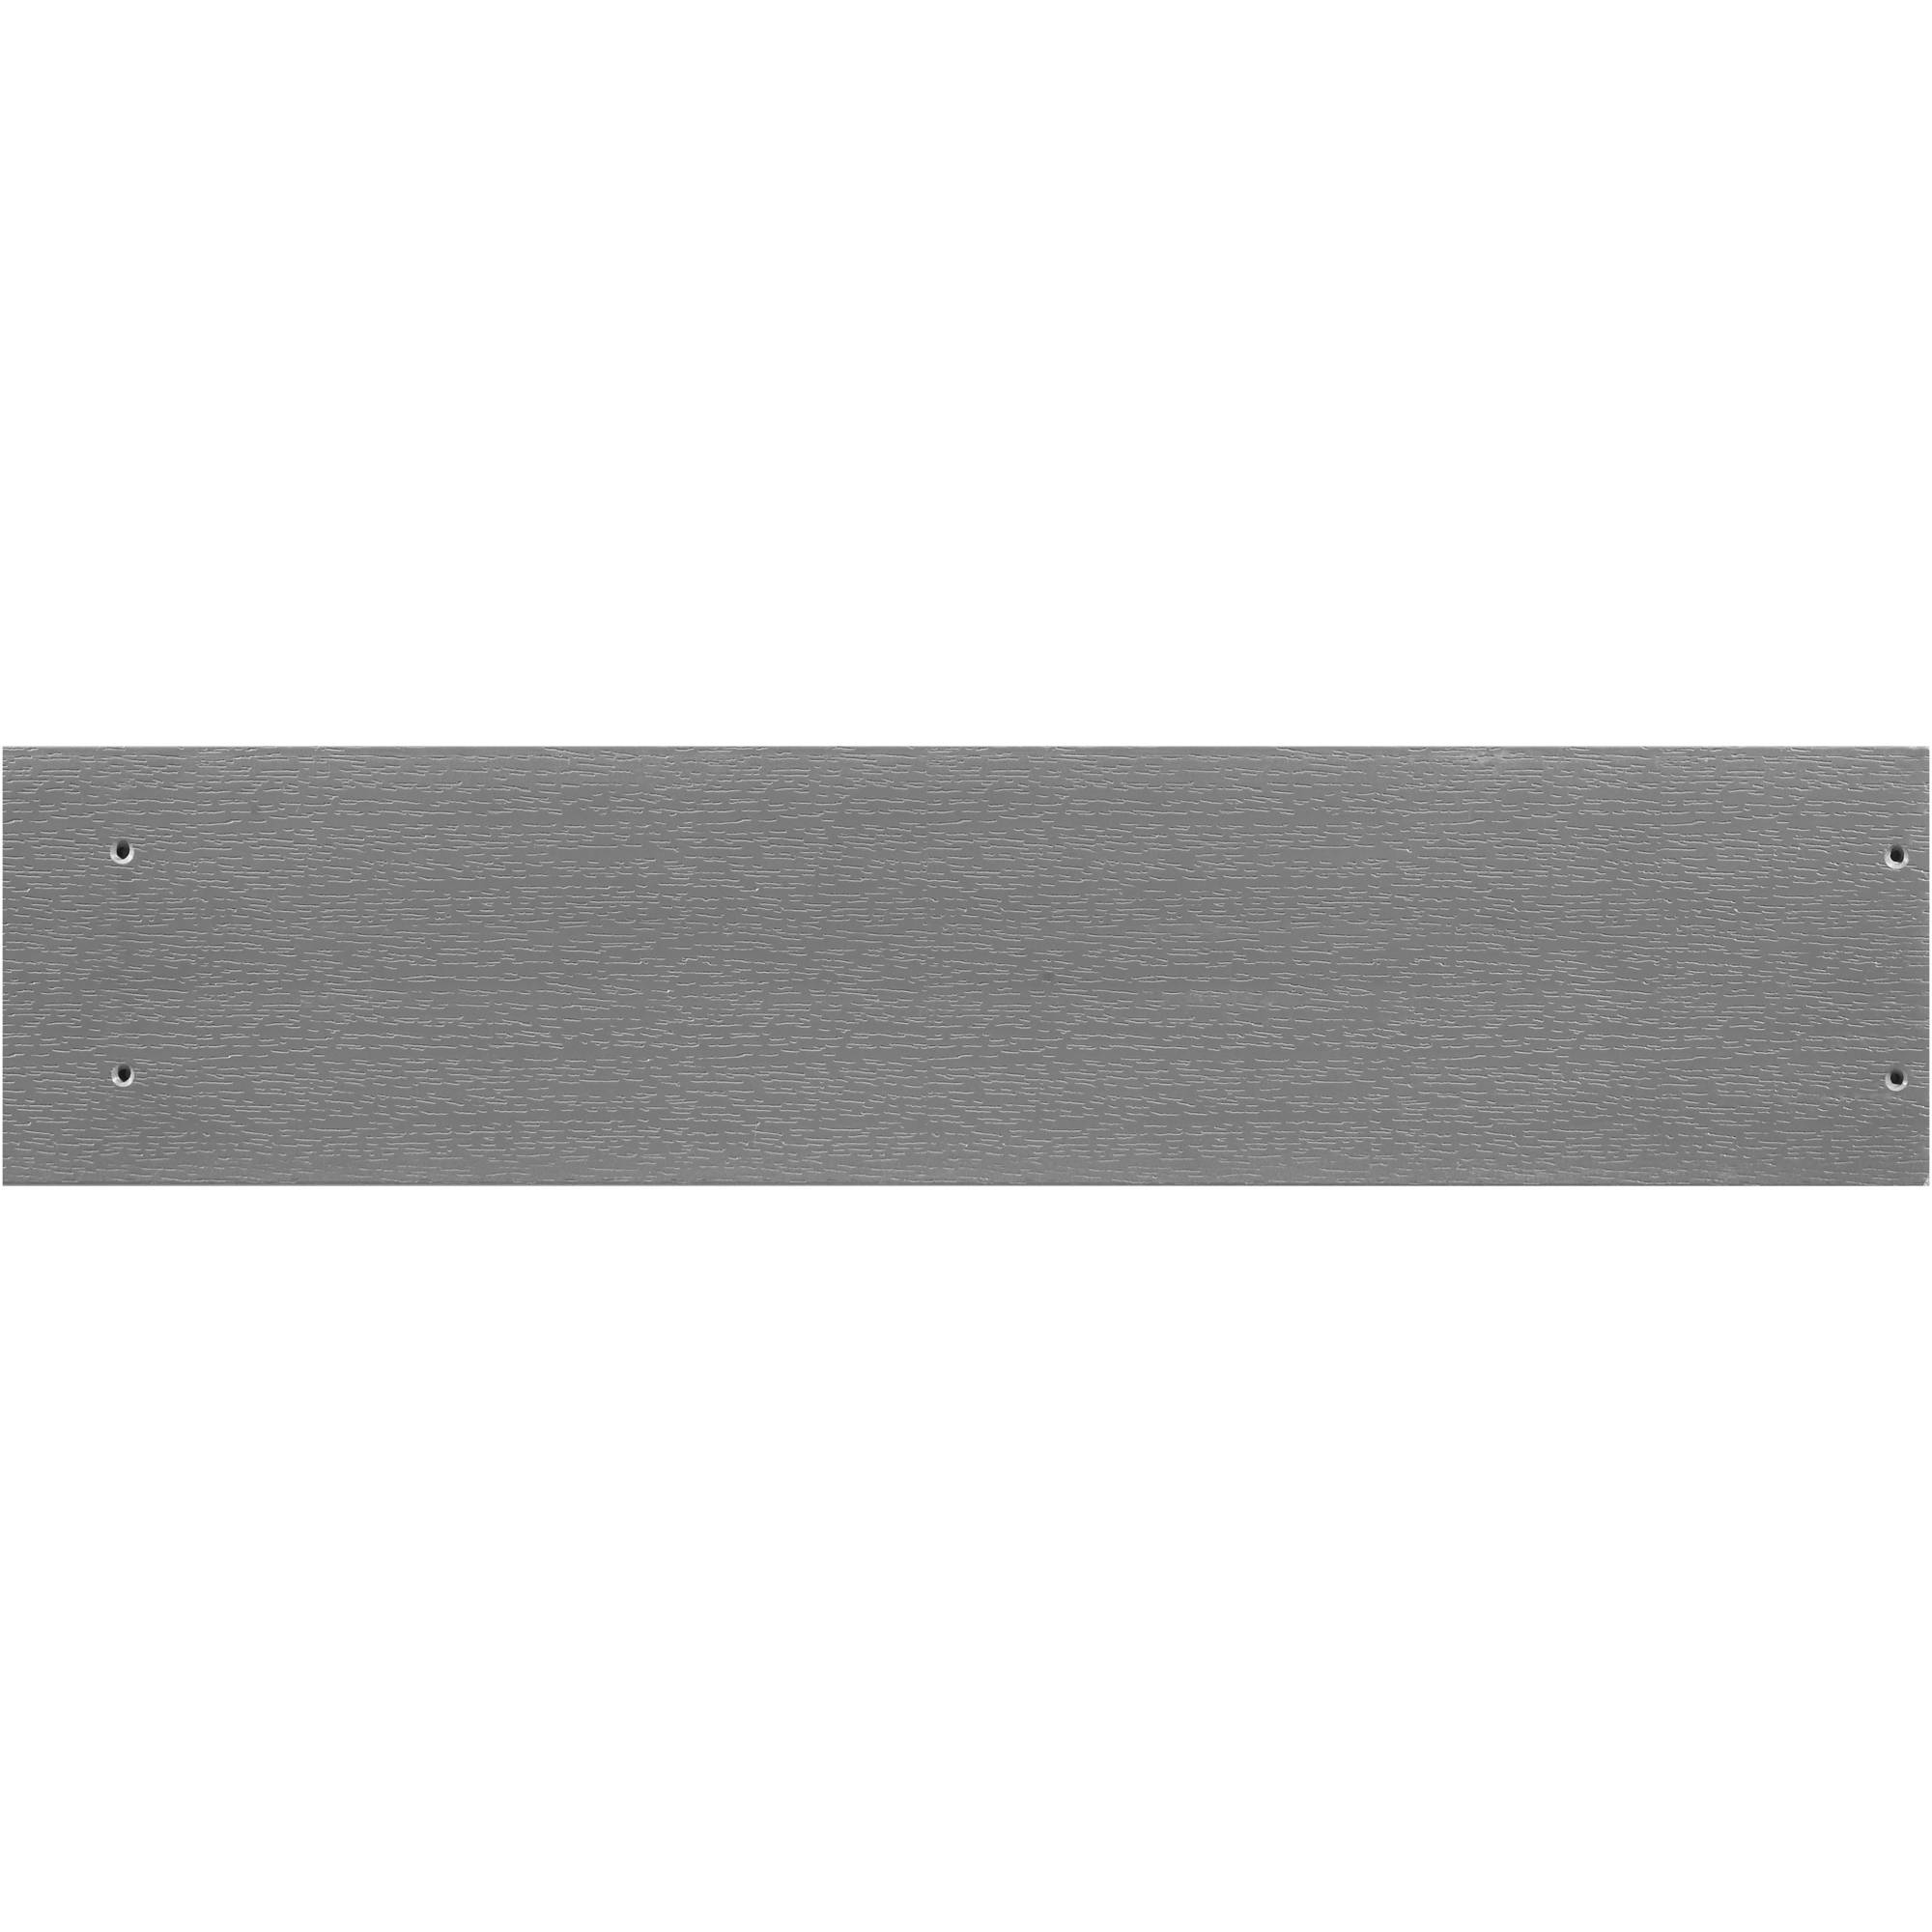 GLADIATOR GearWall Panel Base Board (4-pack)